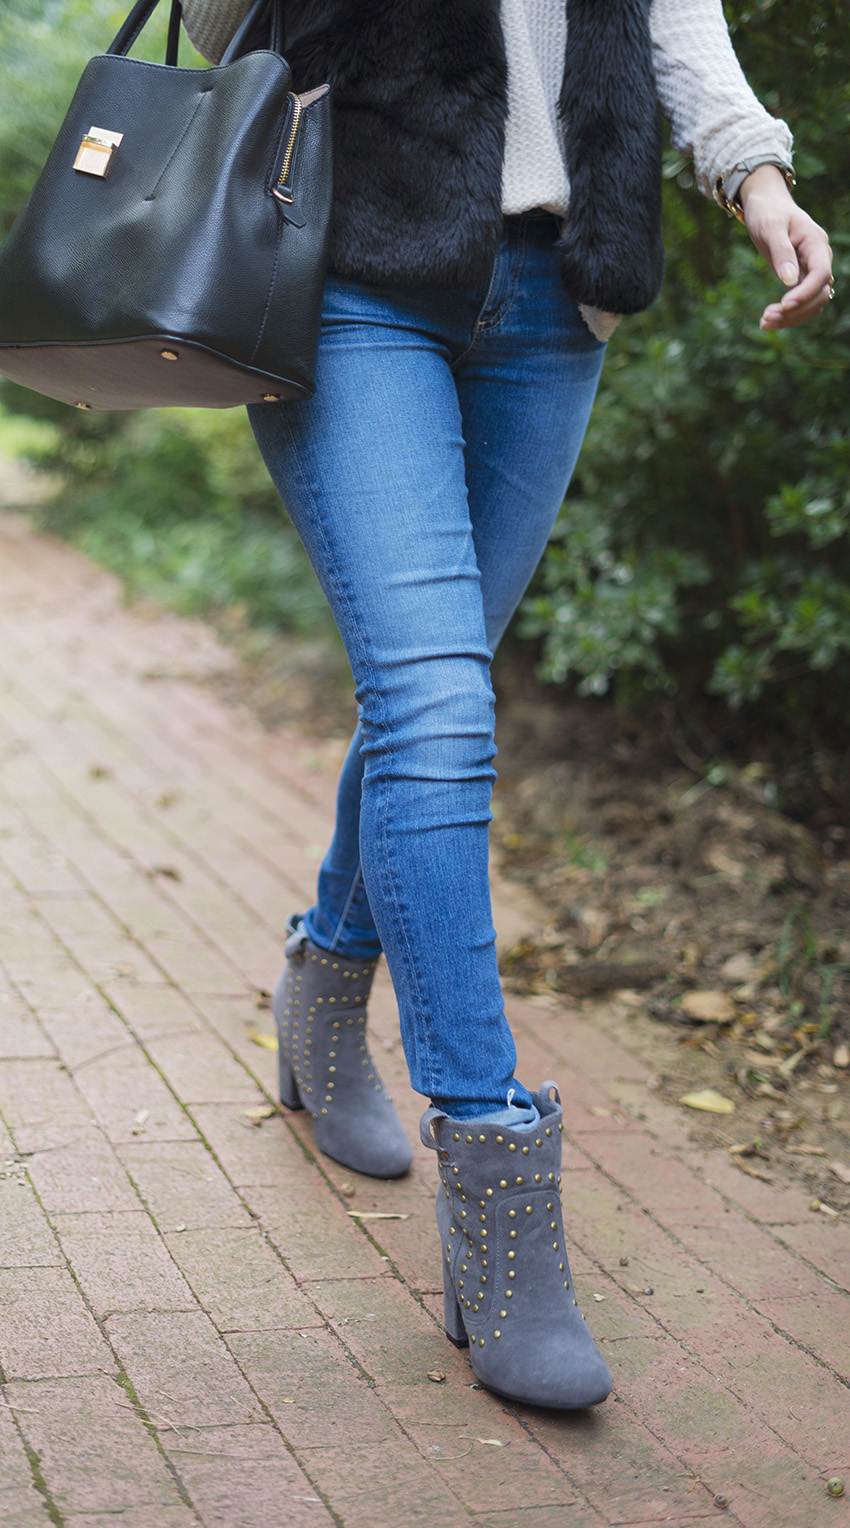 studded ankle boots outfits, fall fashion boots you need now